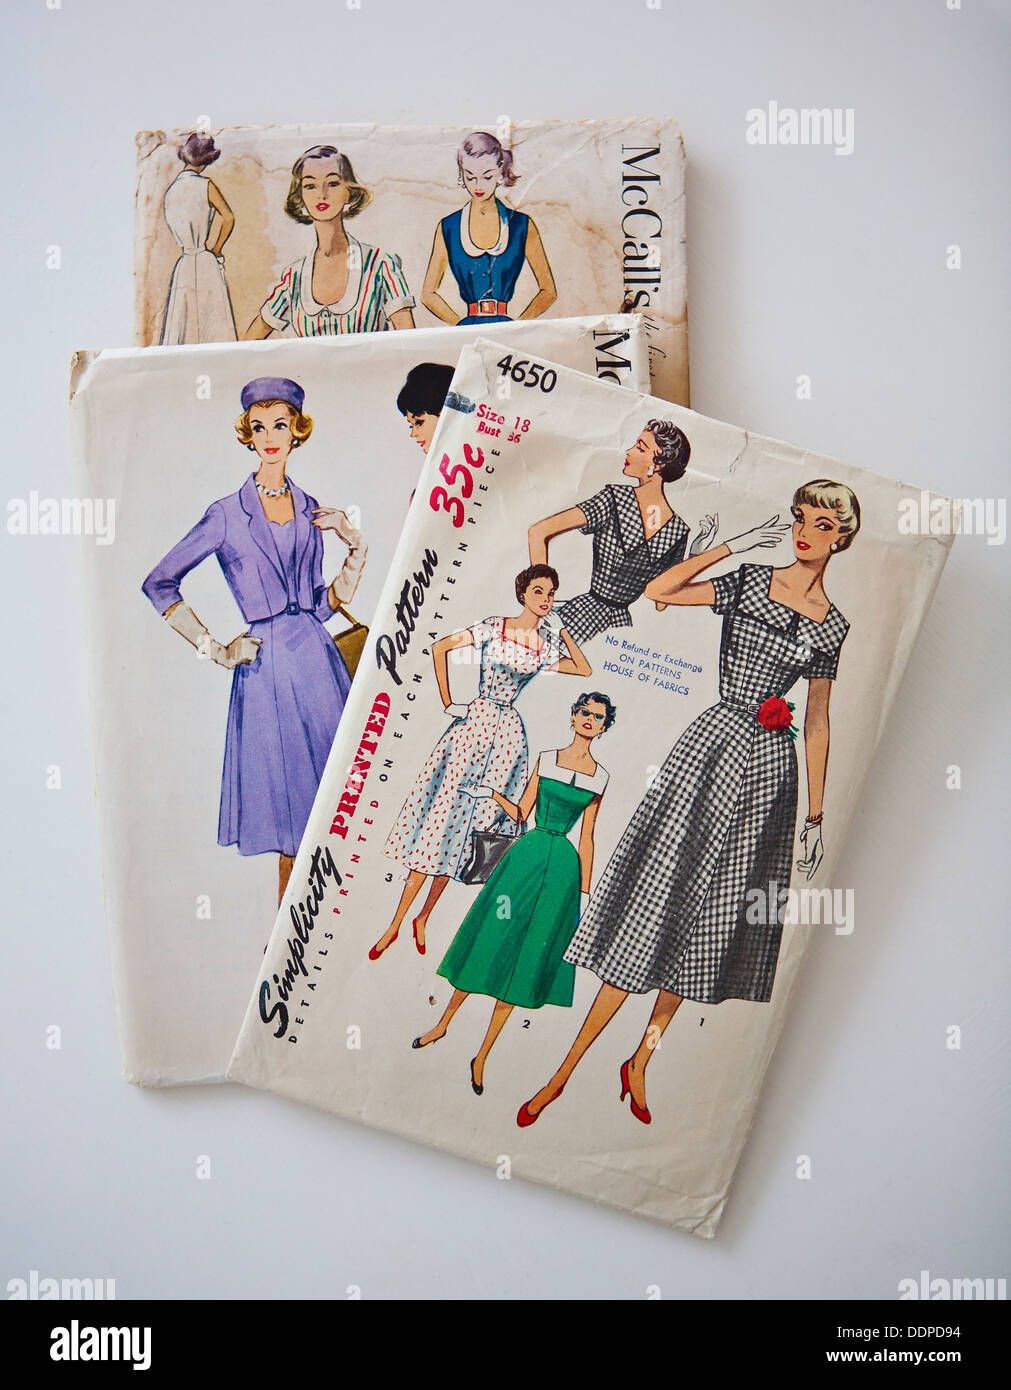 Sewing Patterns Stockfotos & Sewing Patterns Bilder - Alamy